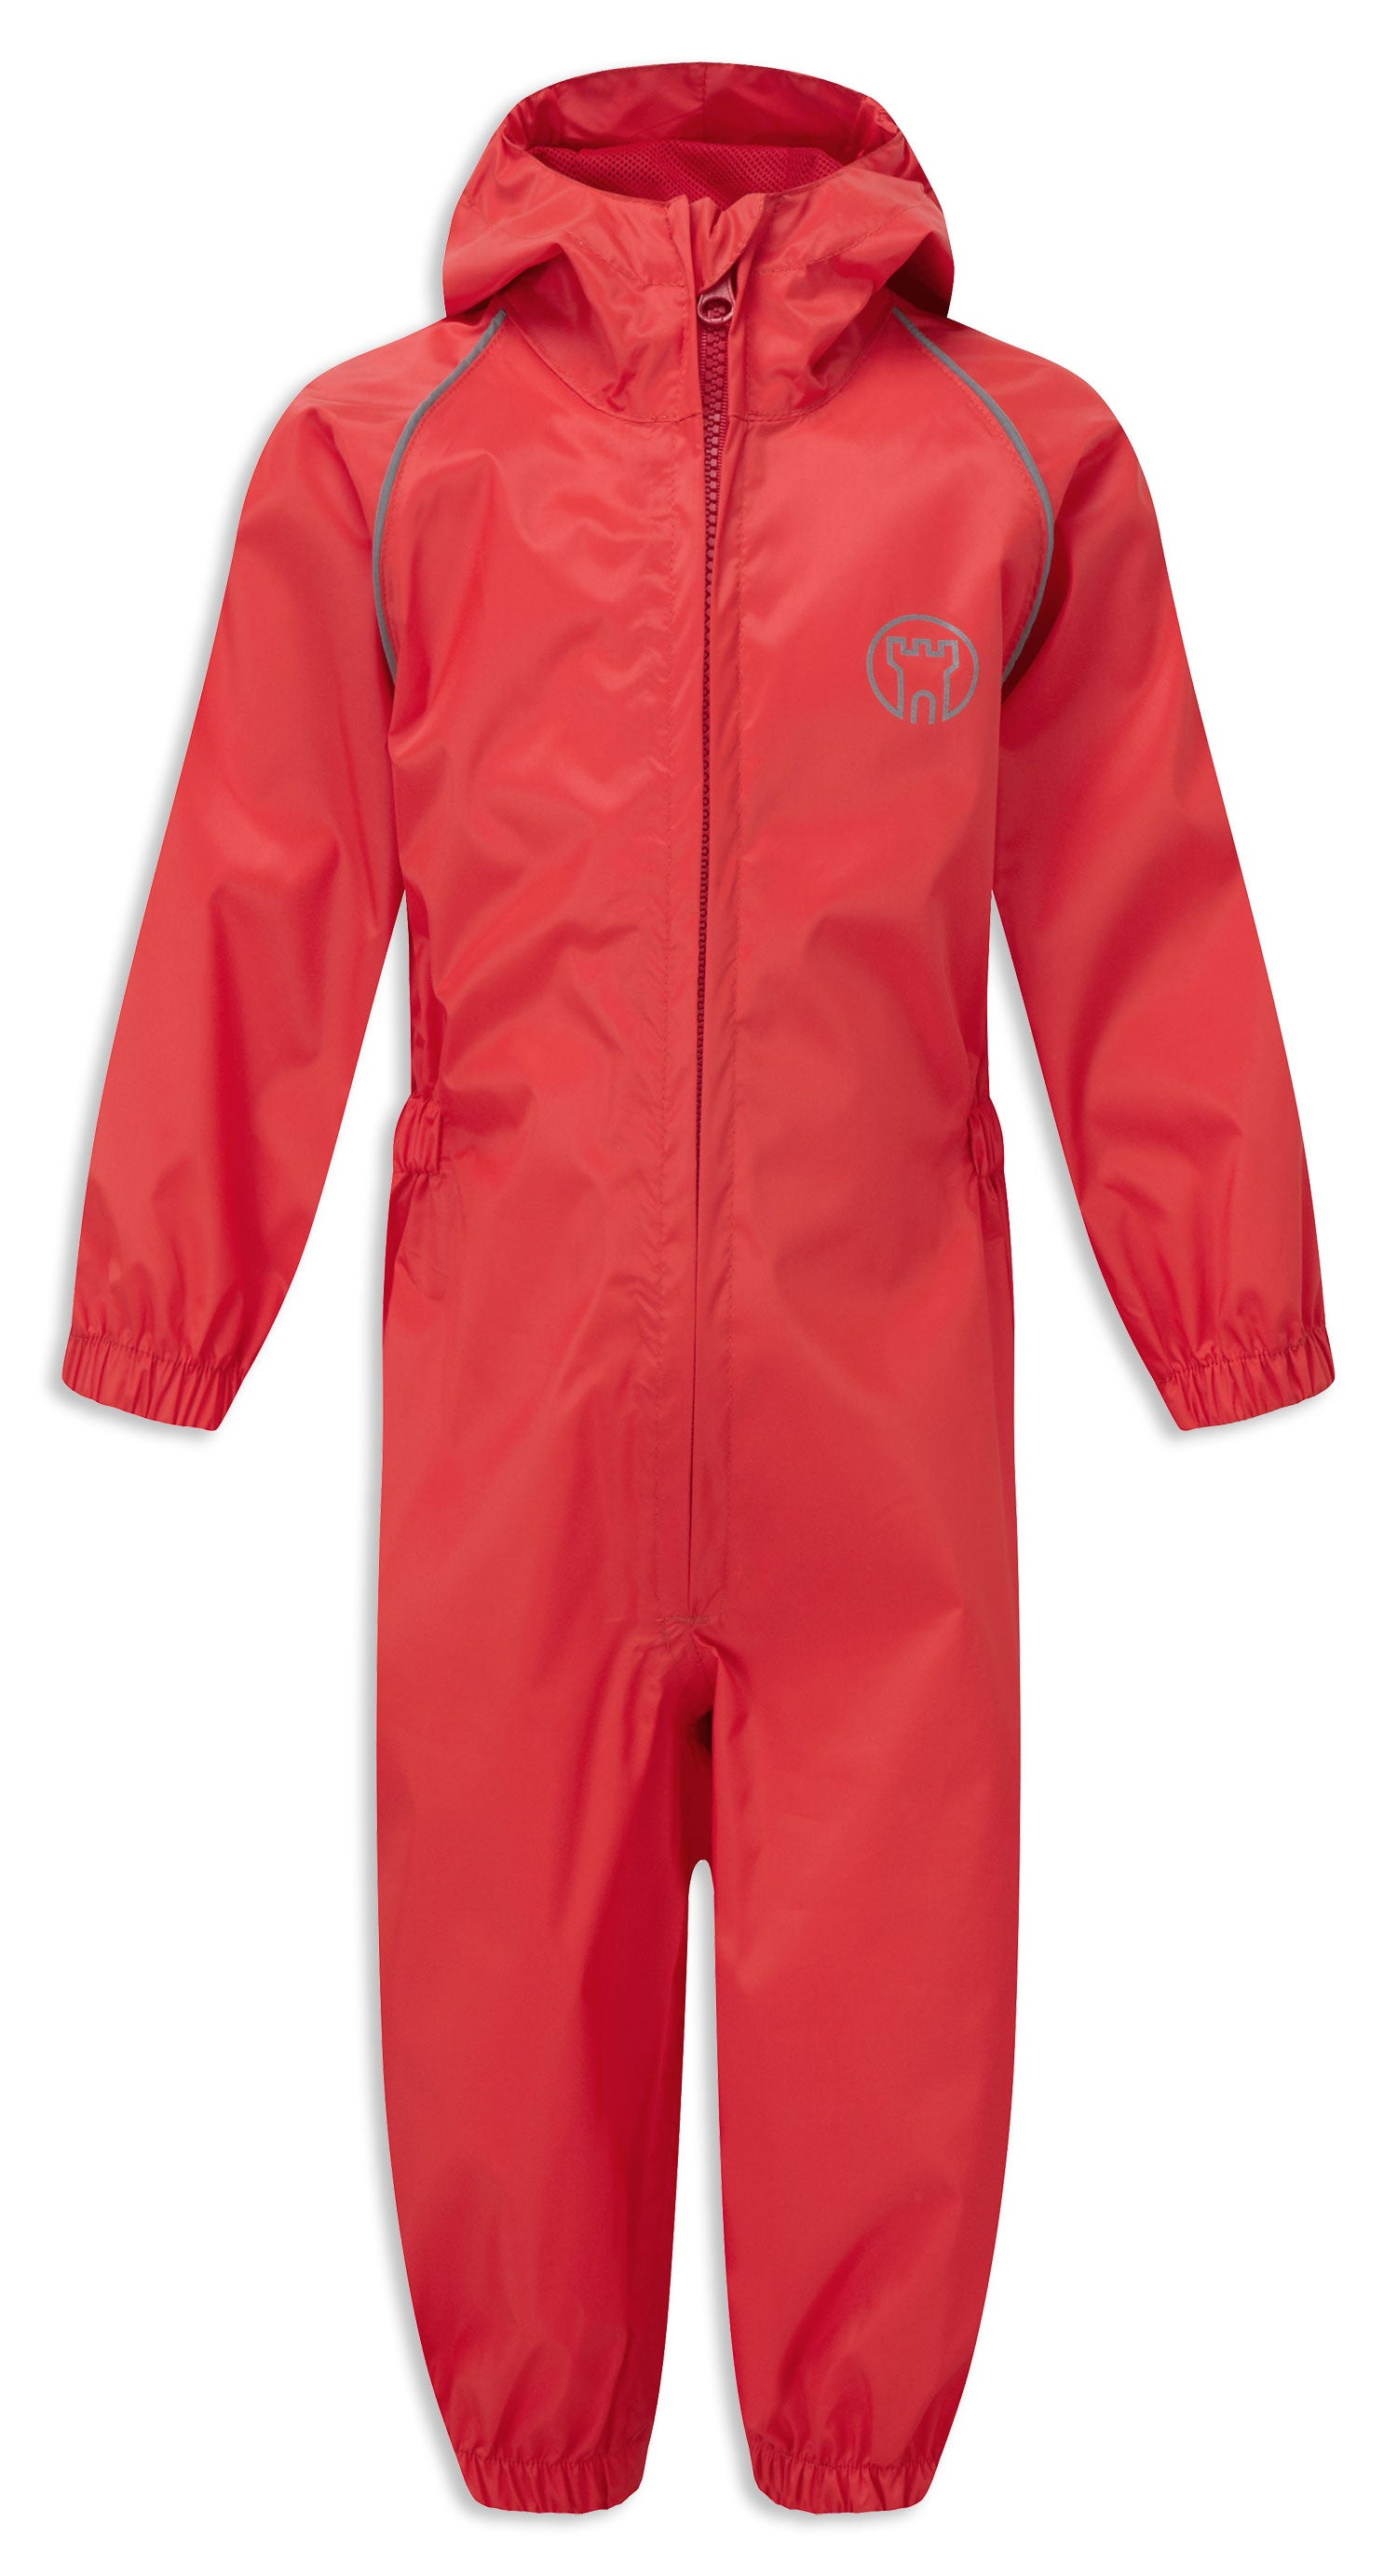 Red waterproof  Child's Splashaway Rainsuit